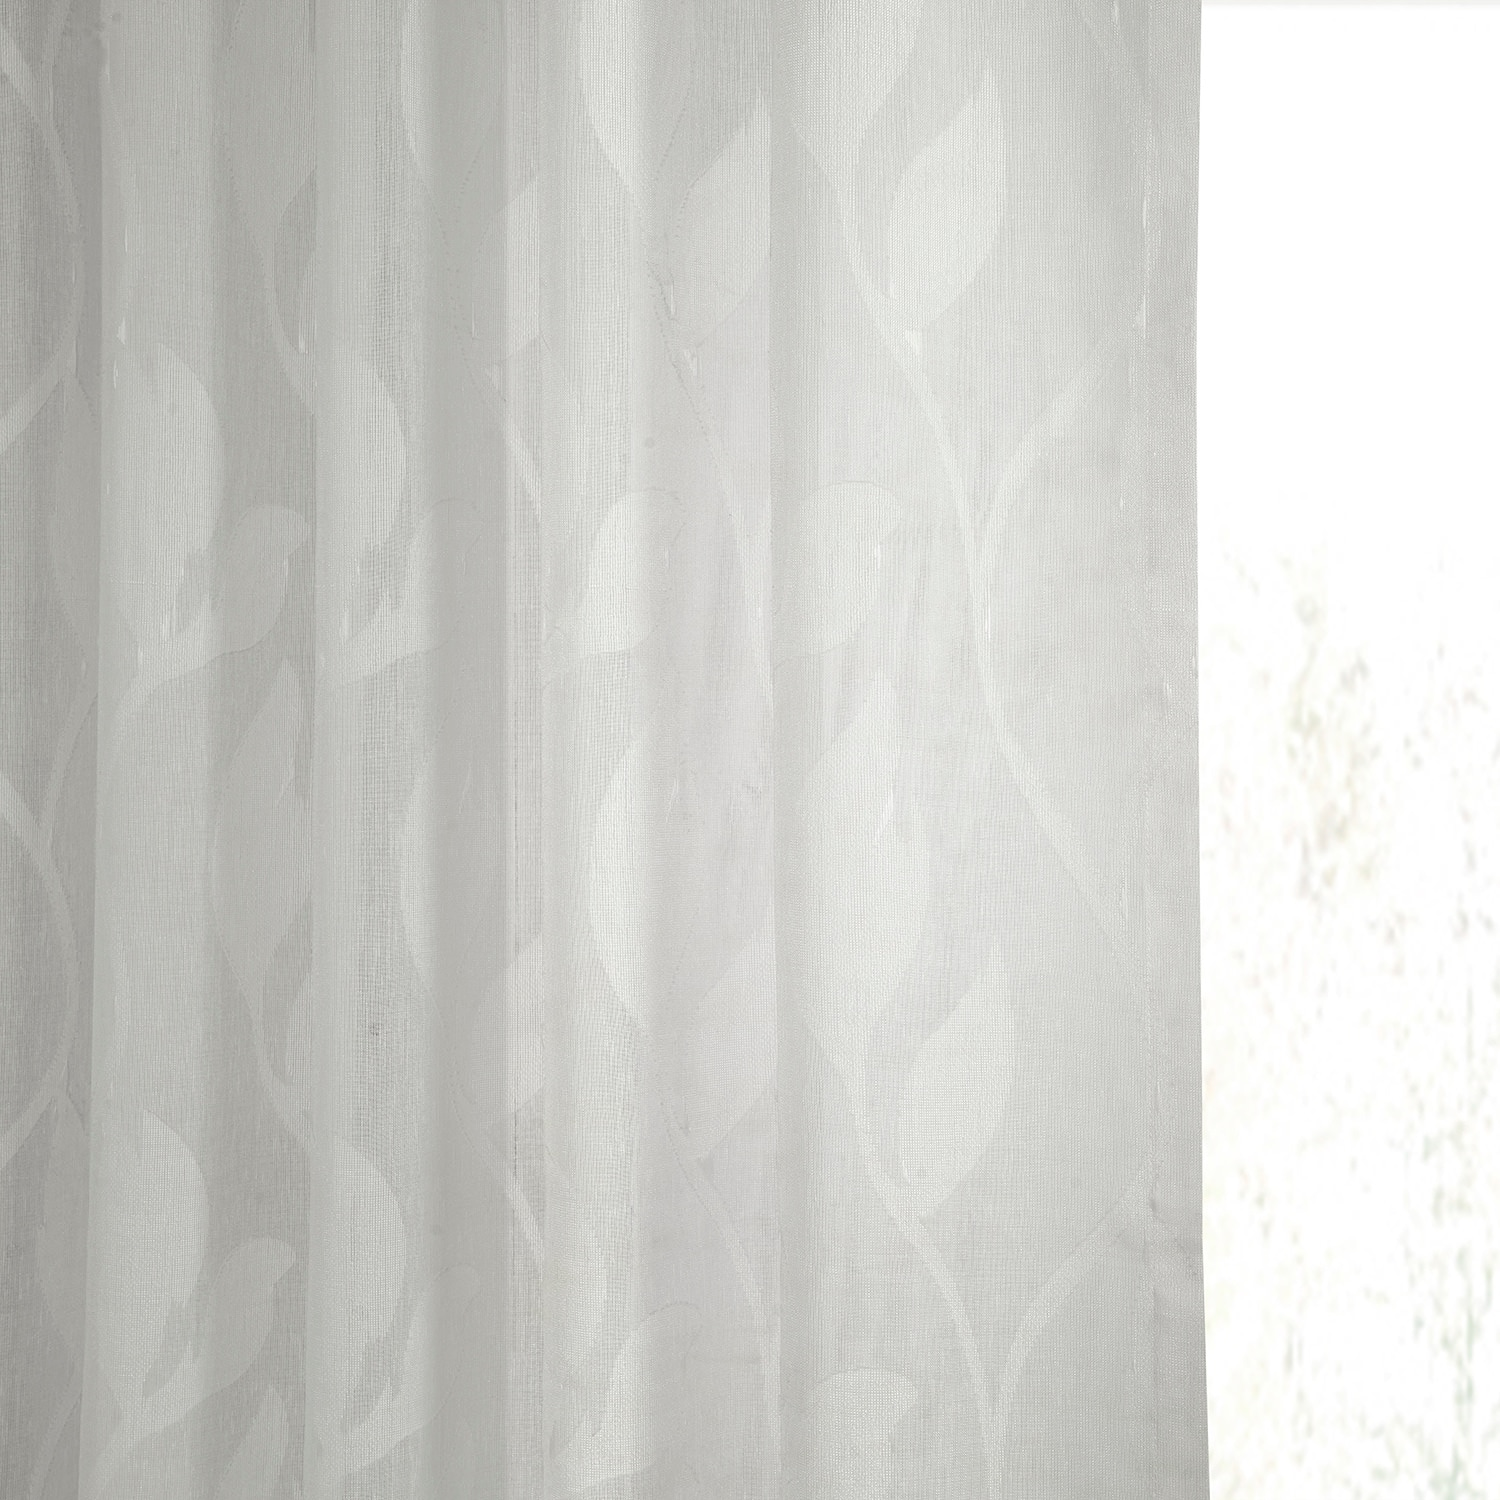 Avignon Vine Patterned Faux Linen Sheer Curtain